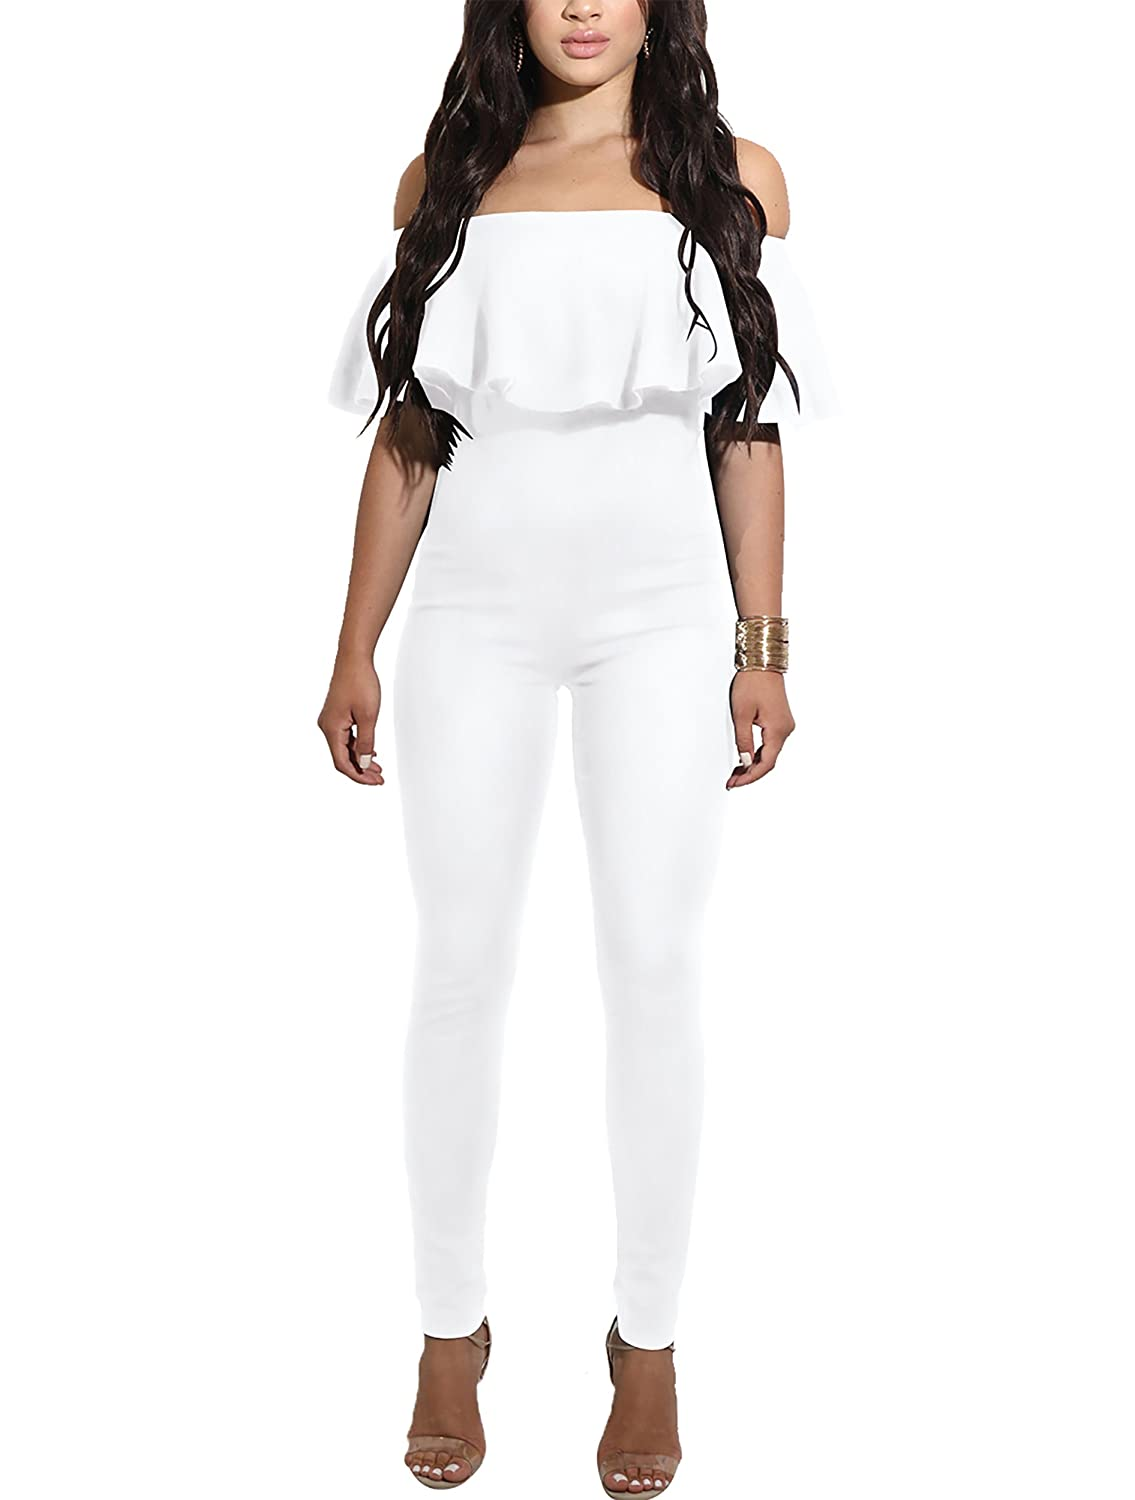 Amazon.com: CoCo fashion Shoulder Sleeve Hollow Out Sexy Women Bodycon Long Jumpsuit Rompers (Medium, 2186-White): Clothing